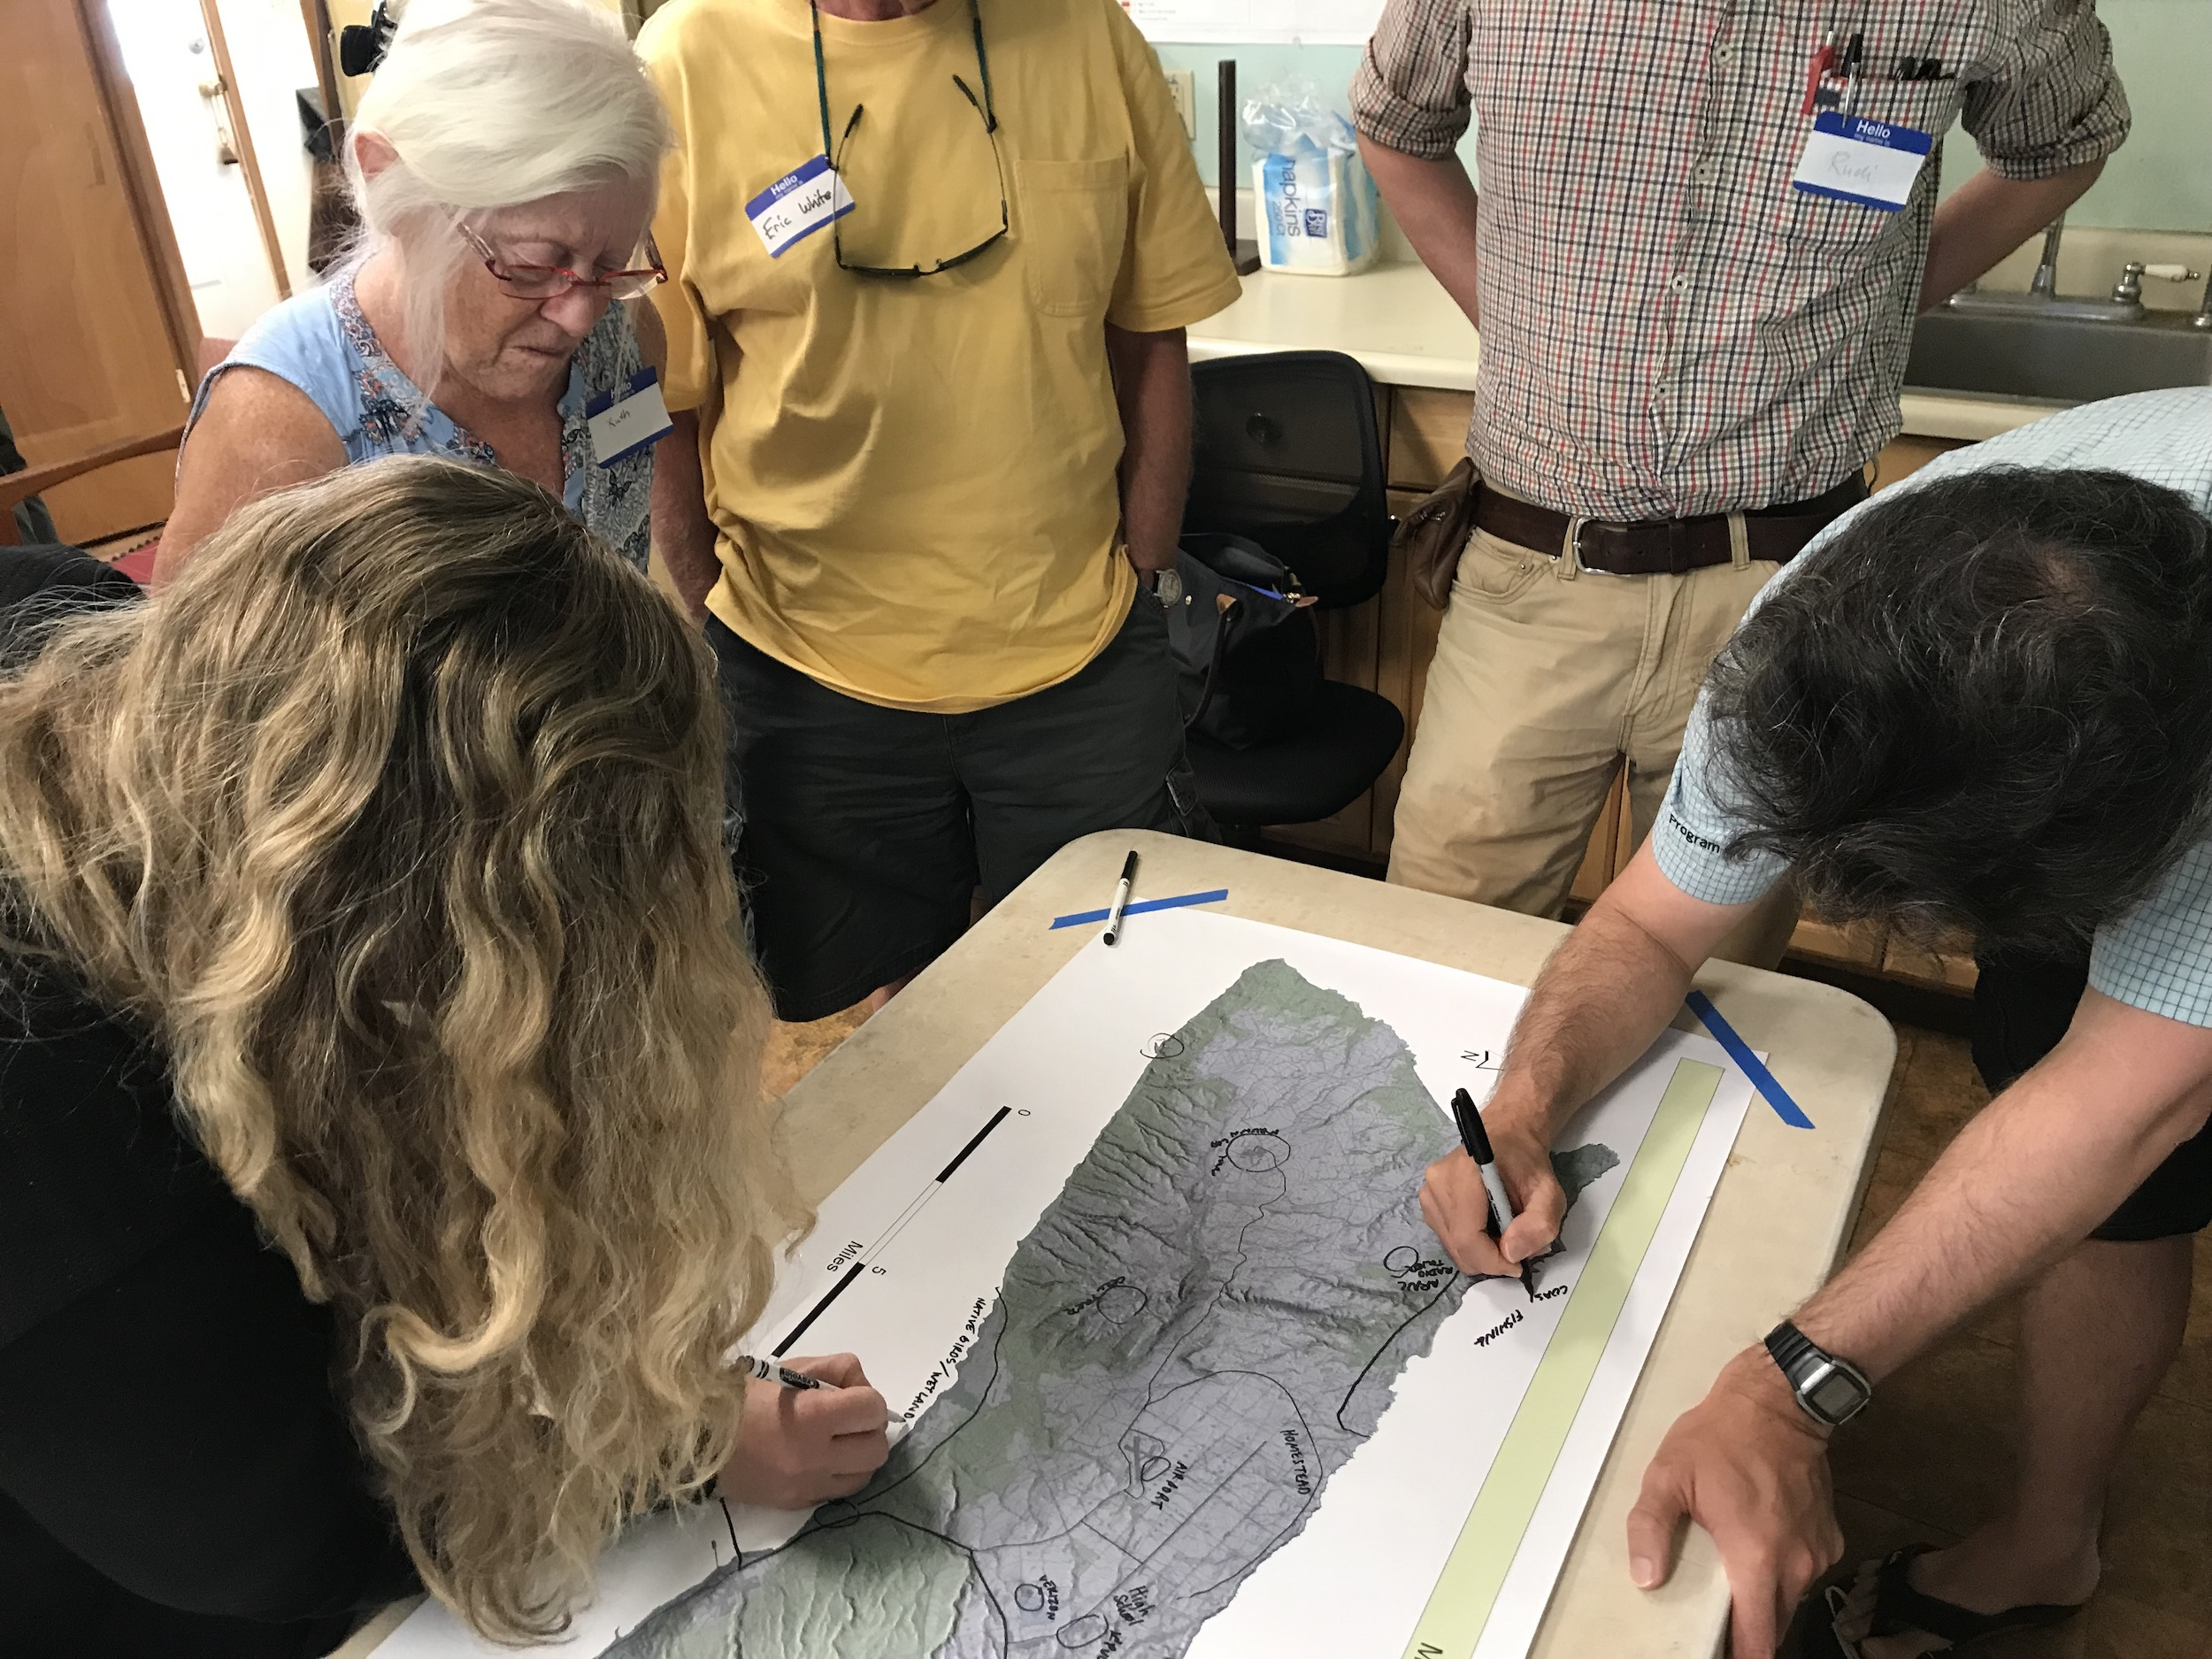 Molokai Vegetative Fuels Management Collaborative Action Planning and Mapping Workshop_4_2_2019_12.jpg